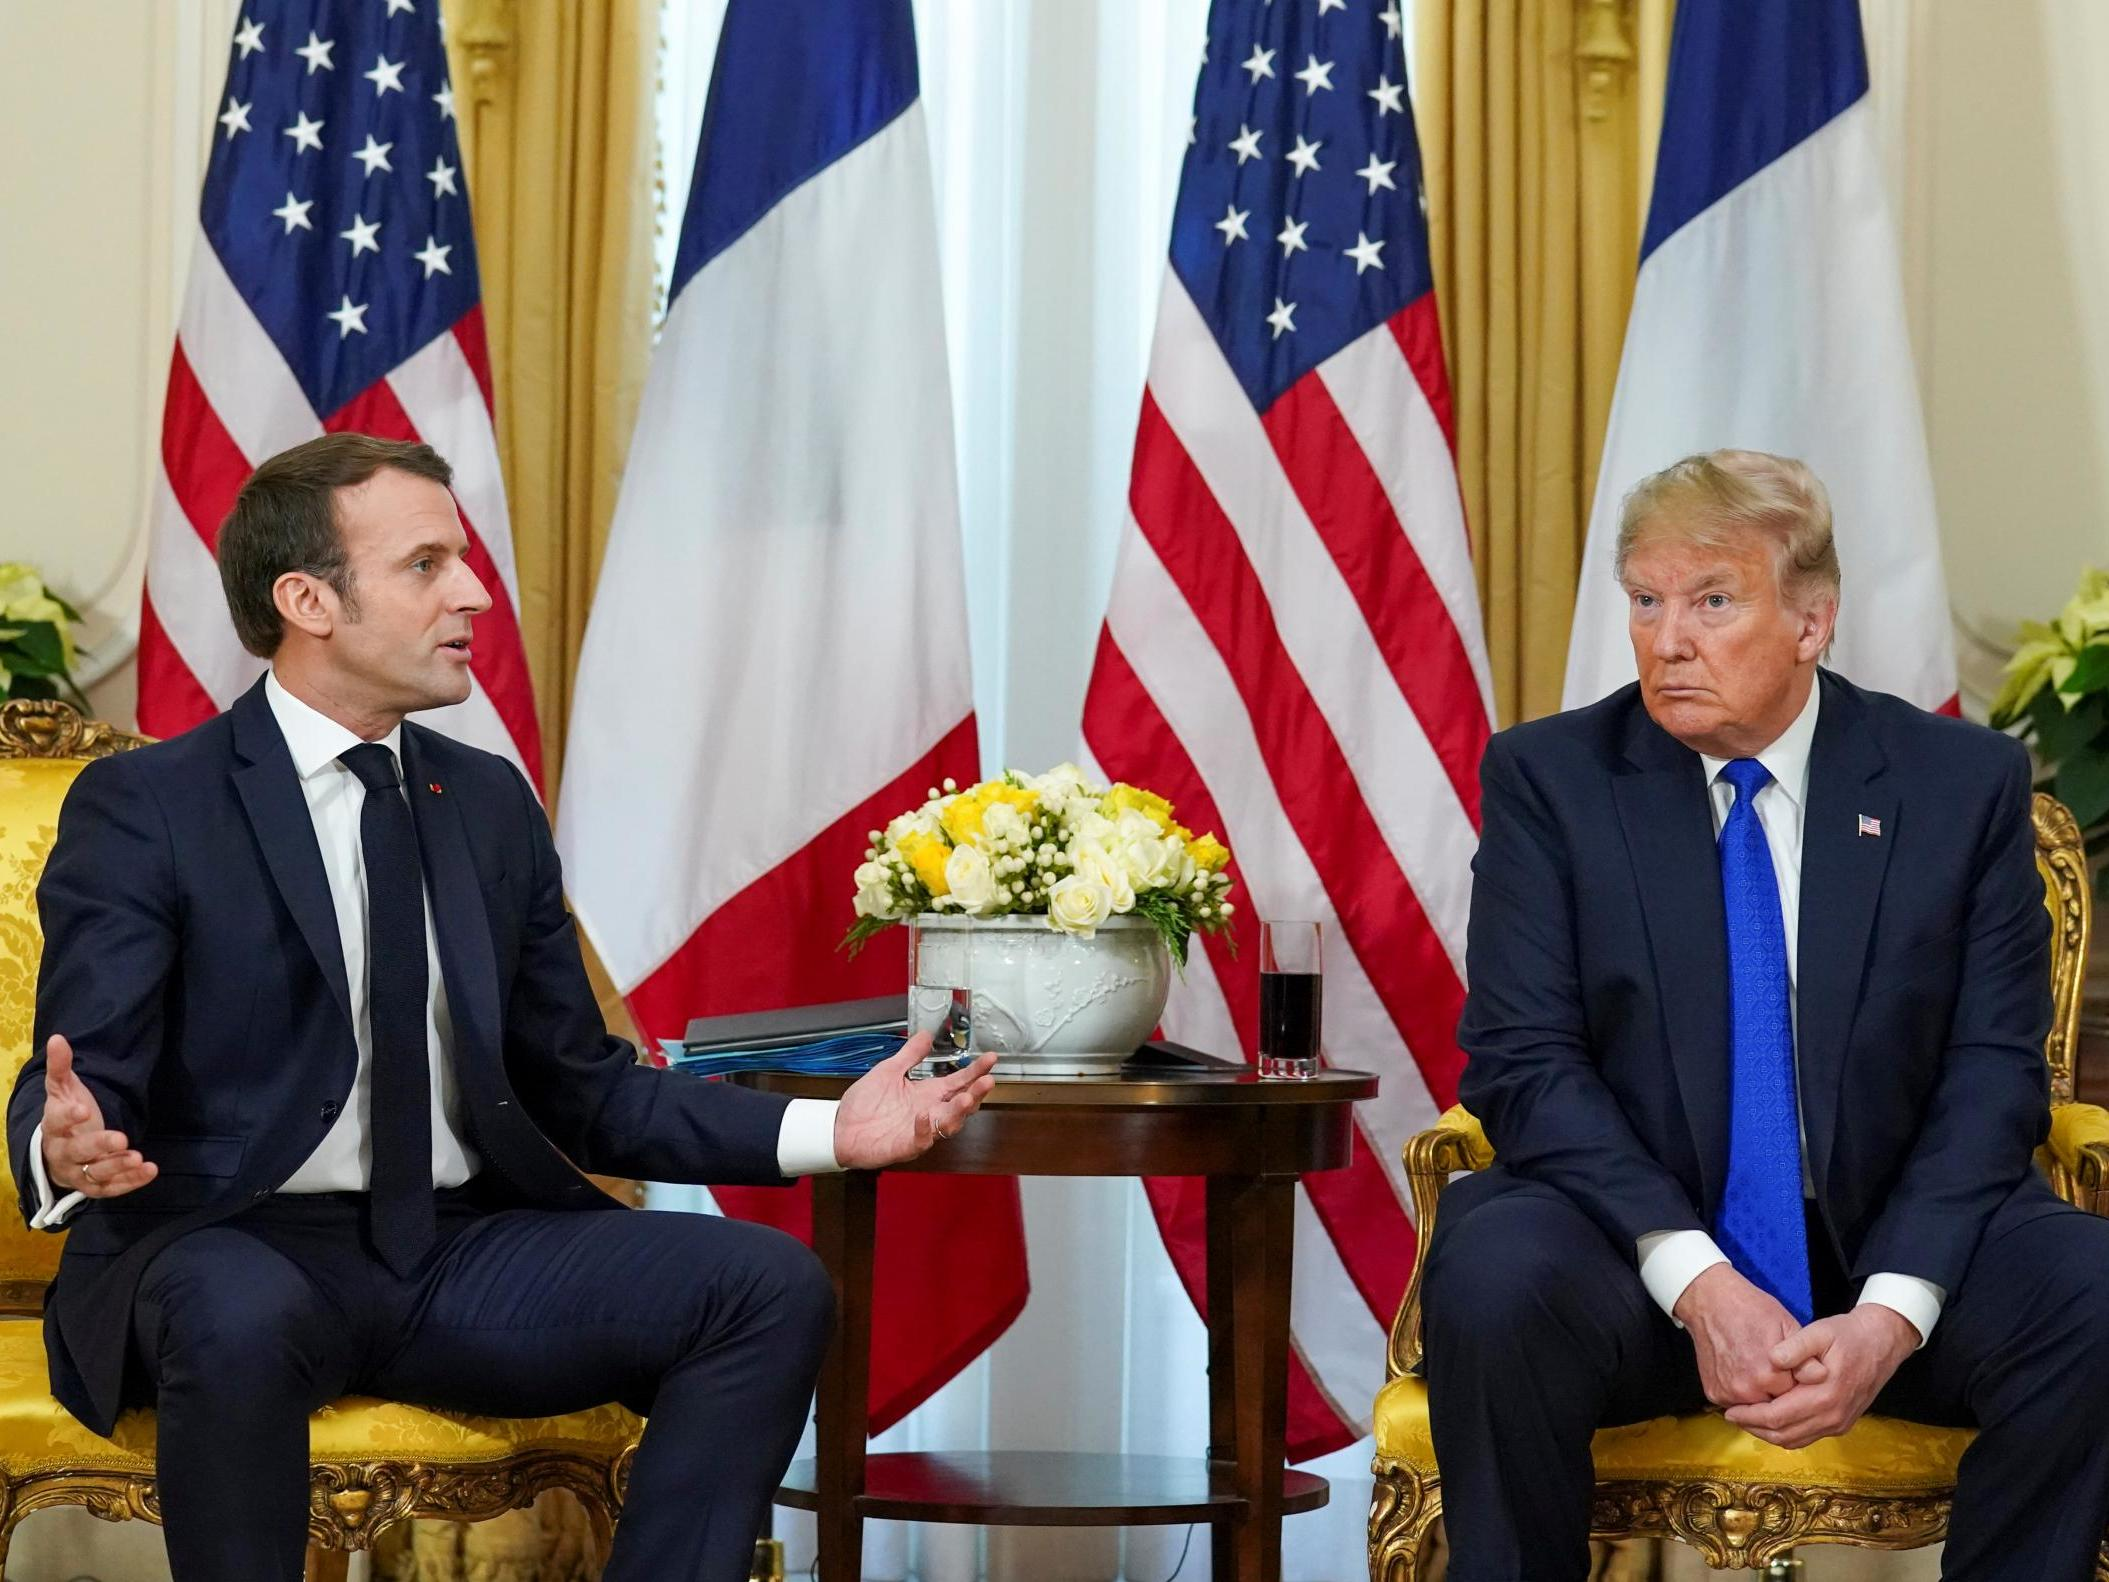 Trump impeachment news – live: President in tense exchanges with Macron over Isis joke after calling French leader 'very nasty' at Nato summit